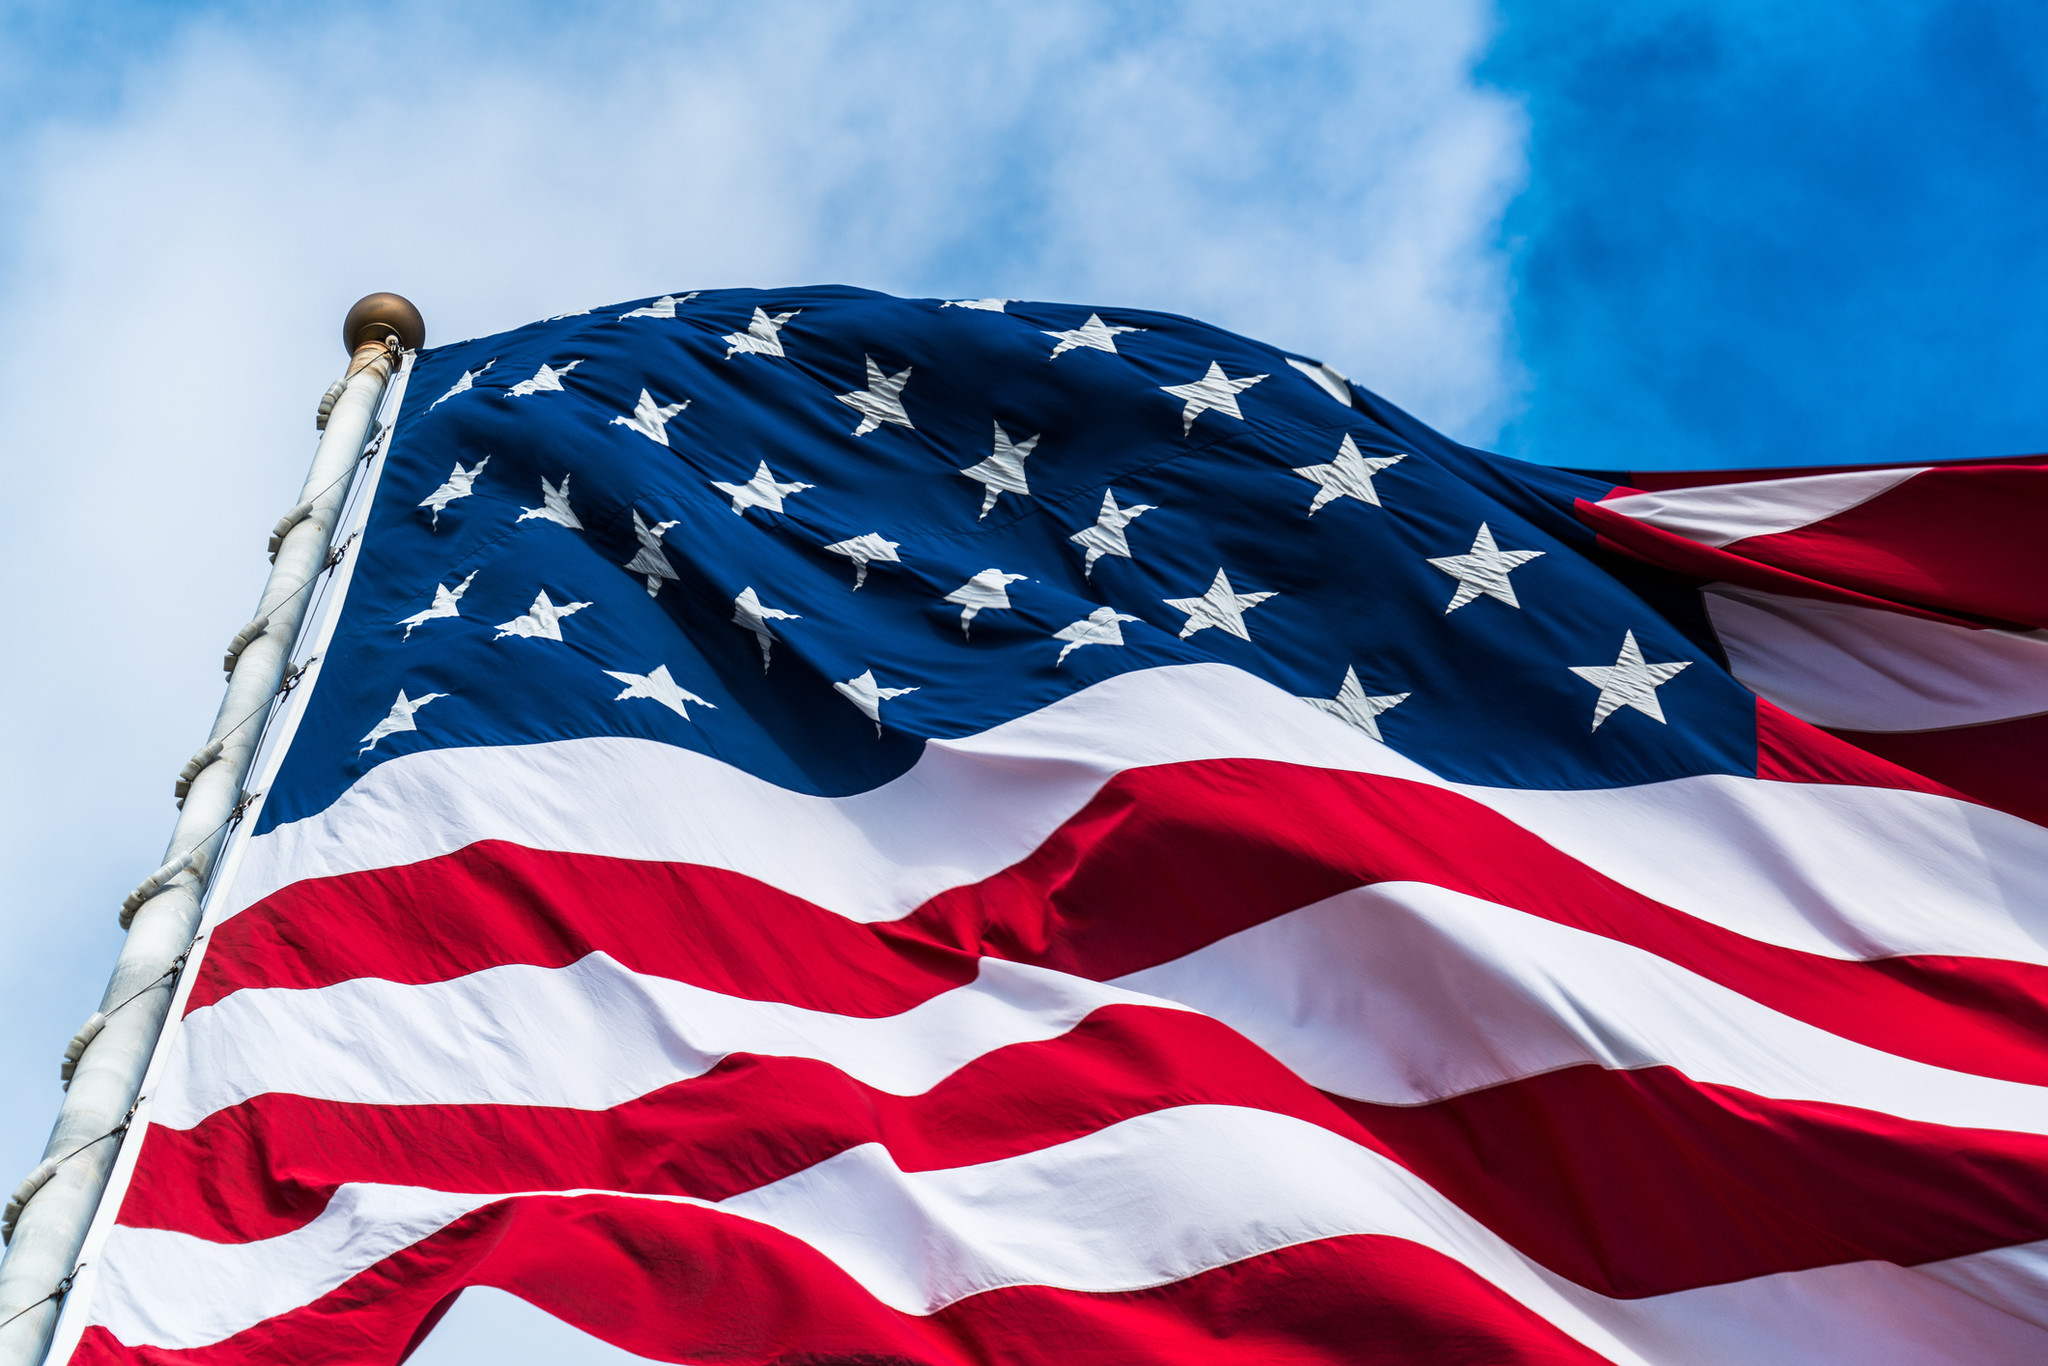 Get a free flag at Ace Hardware in honor of Memorial Day ...